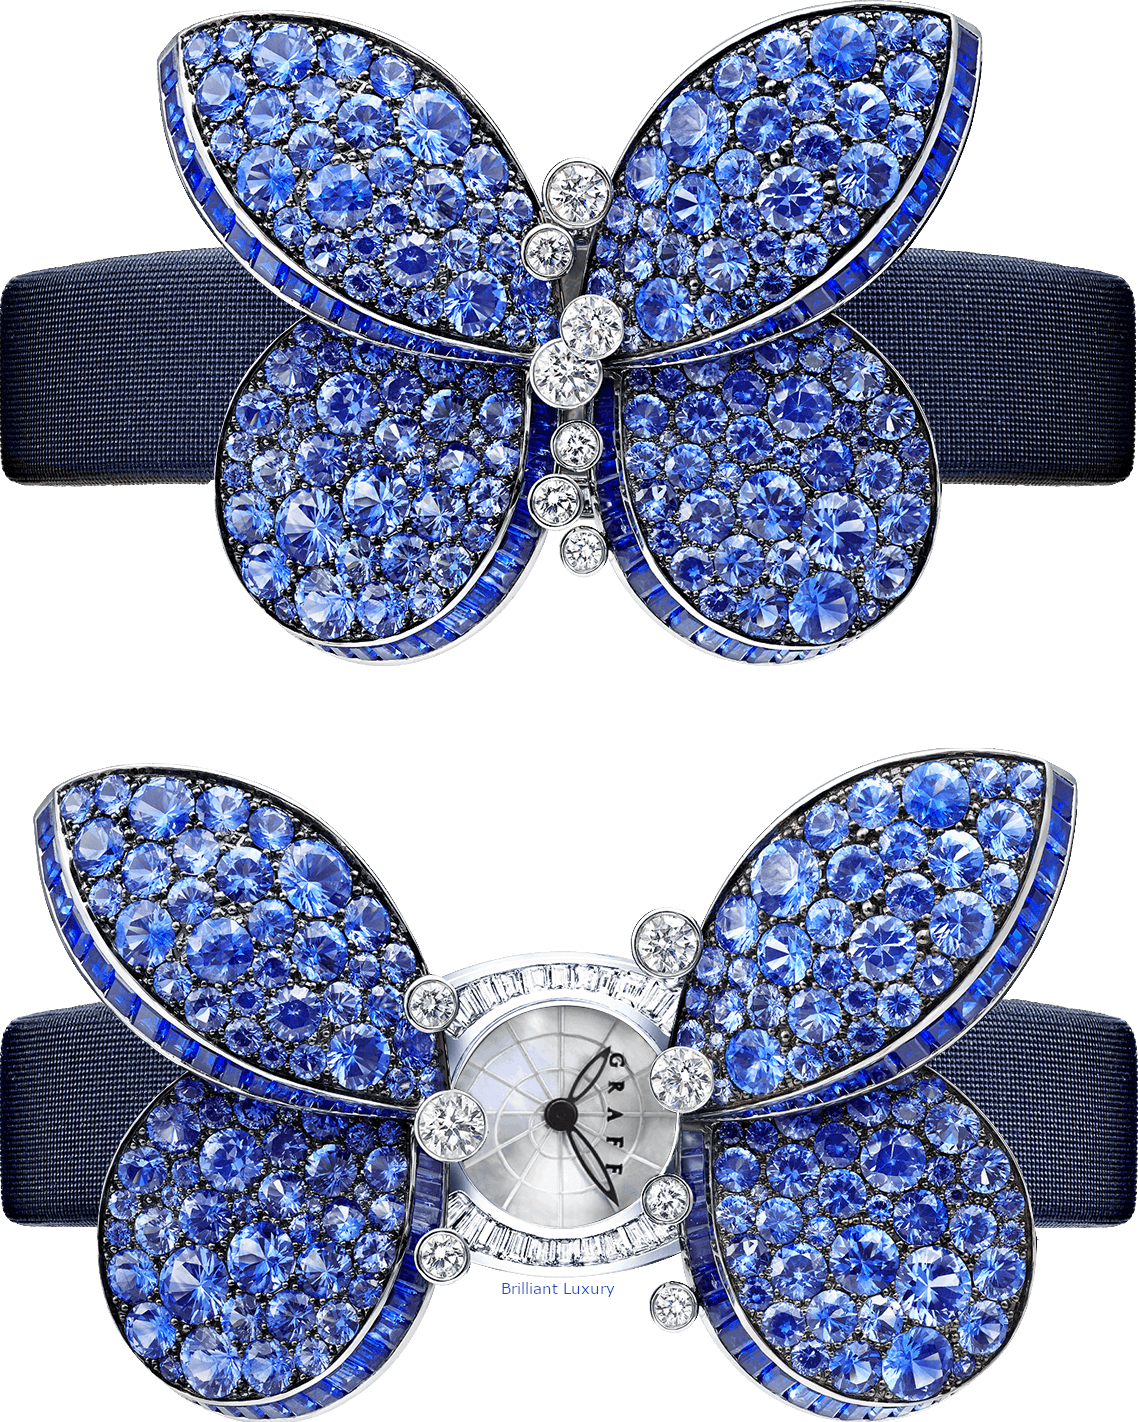 Graff secret watch Princess Butterfly